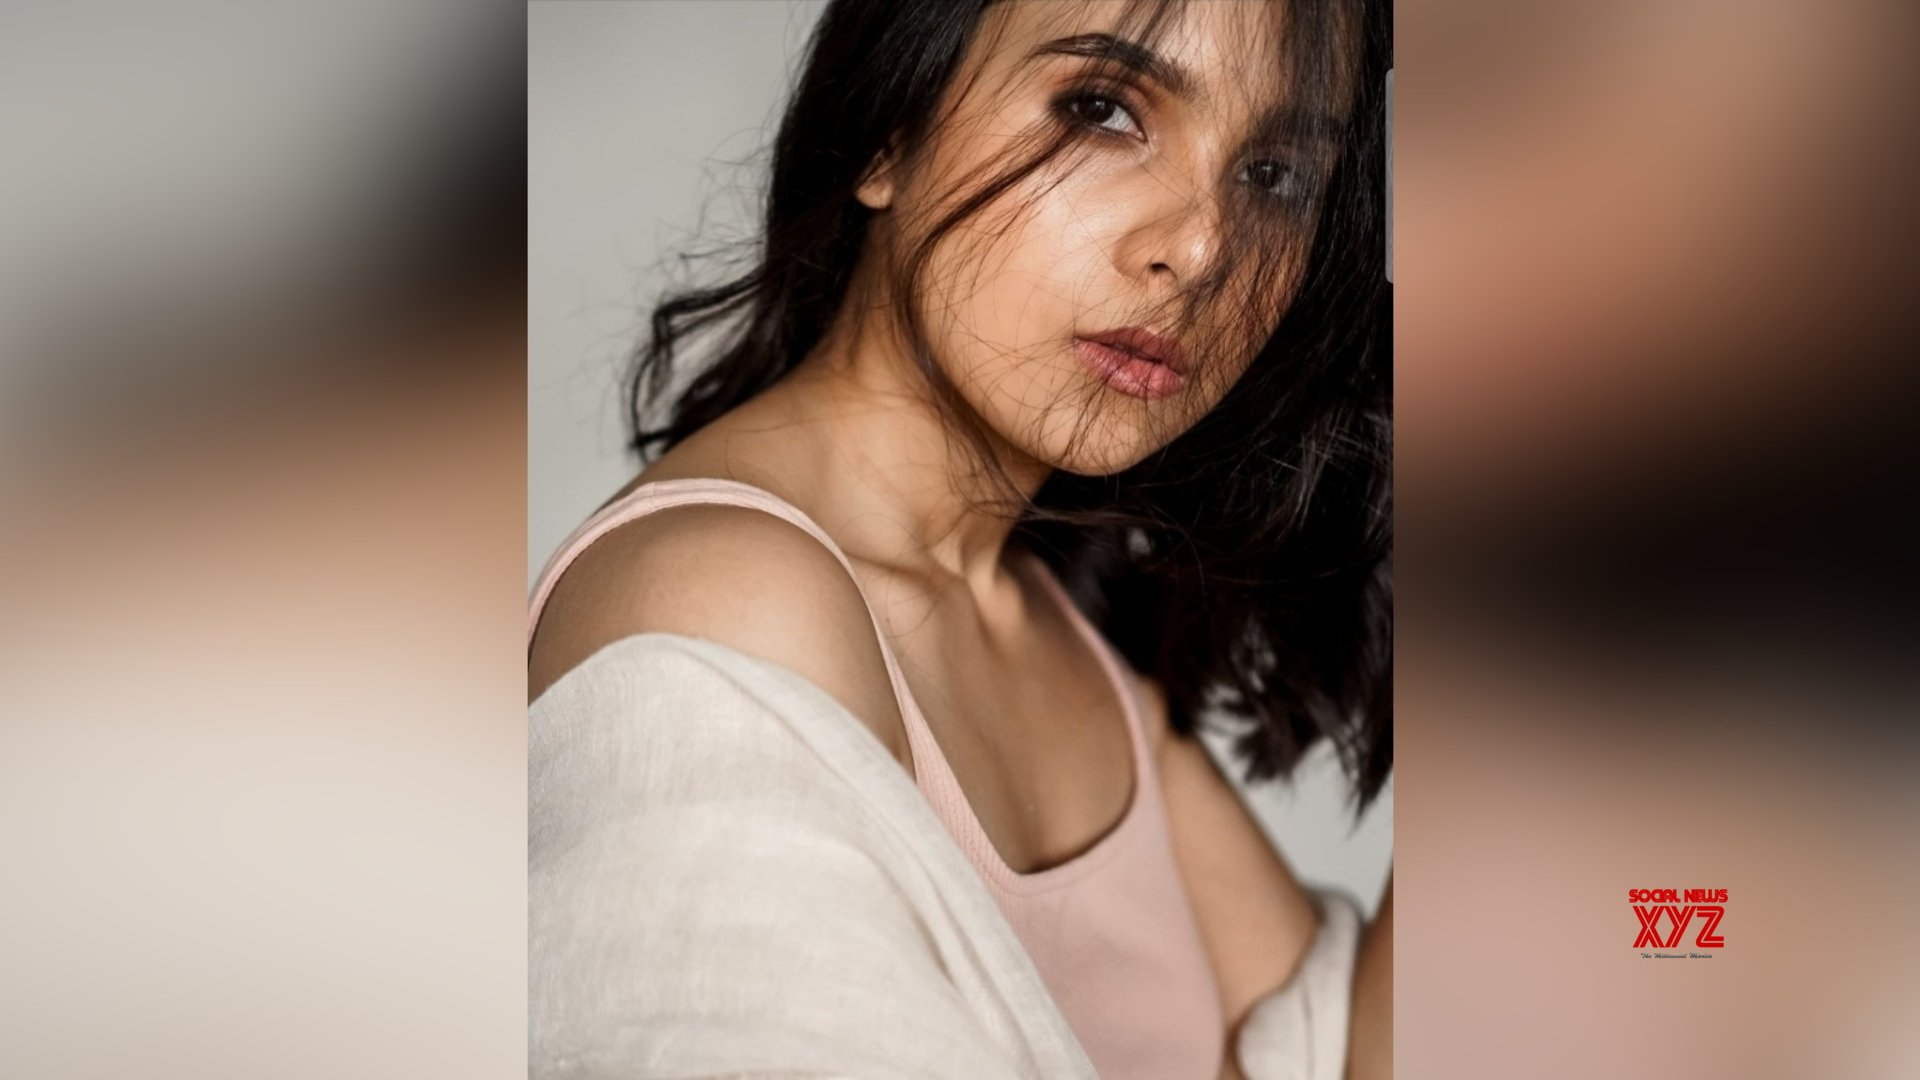 Rashmi Agdekar's new pictures on her Instagram is captivating hearts on the Internet